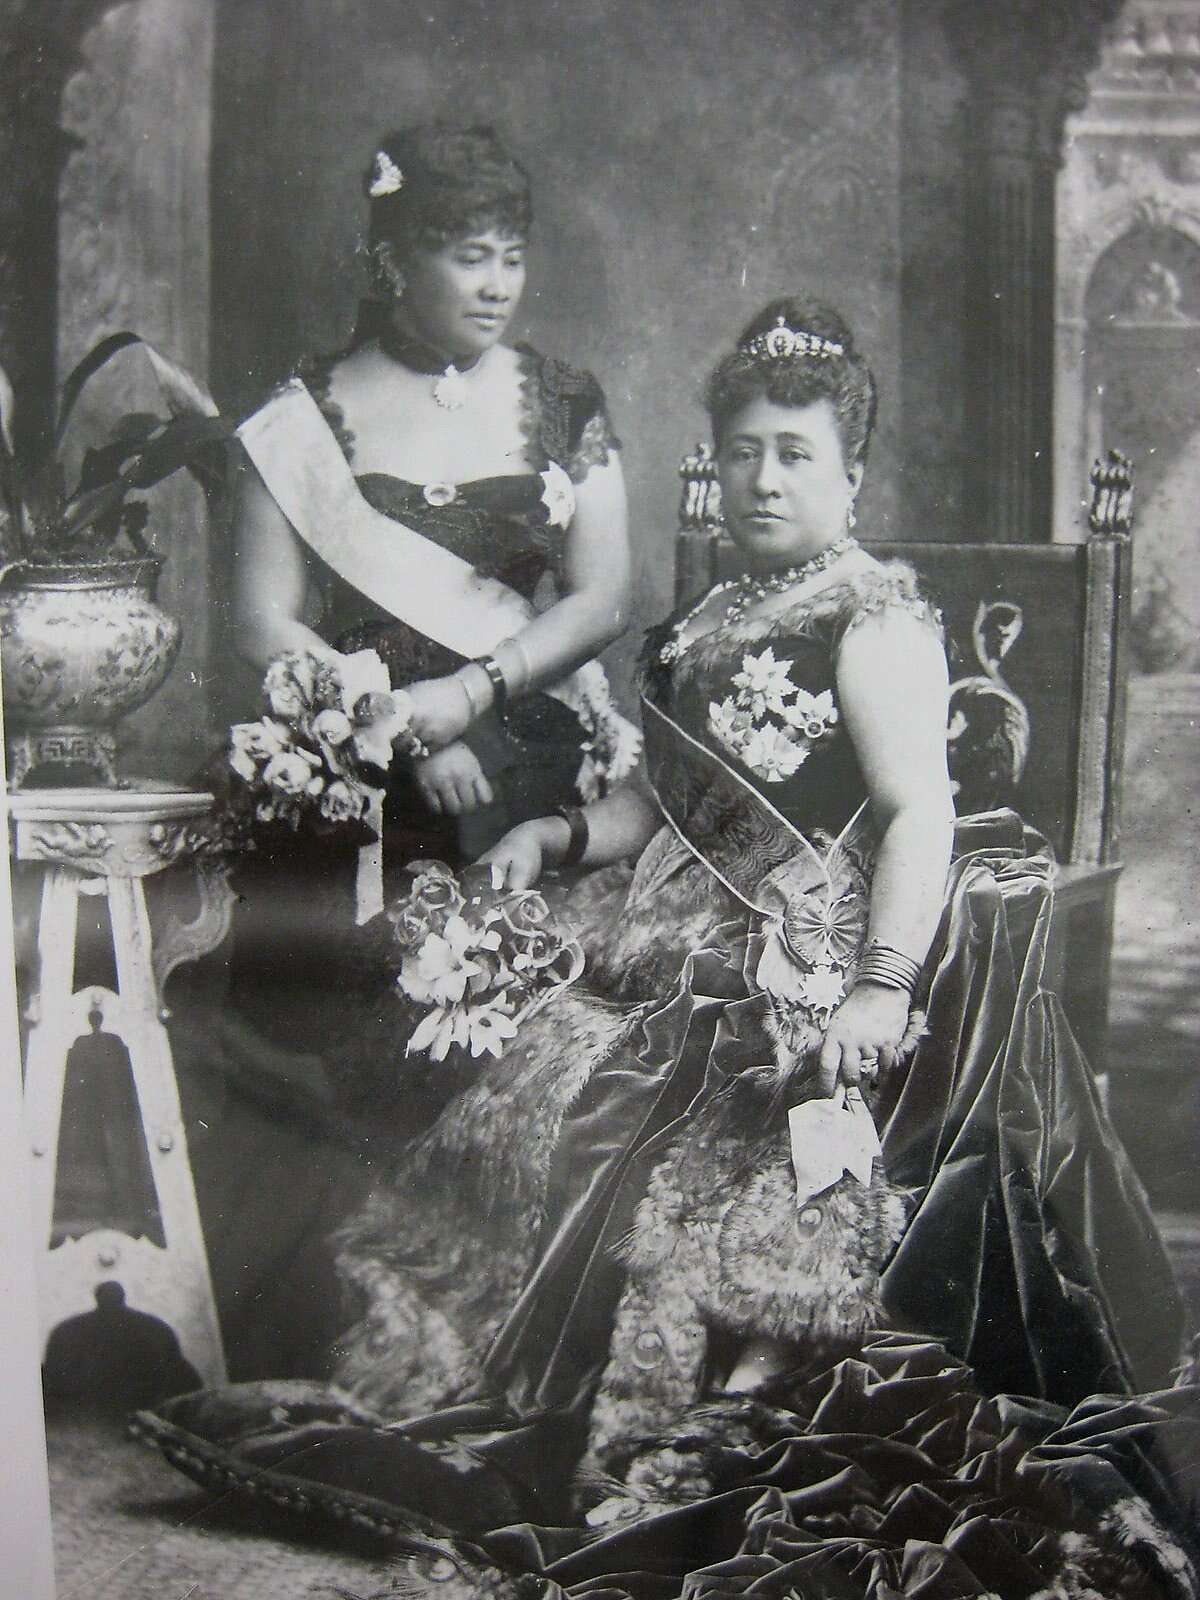 Queen Kapiolani (seated) and her sister-in-law, who later became Queen Liliuokalani, attended the golden jubilee of Queen Victoria in Hawaiian-inspired gowns that have now been reproduced.